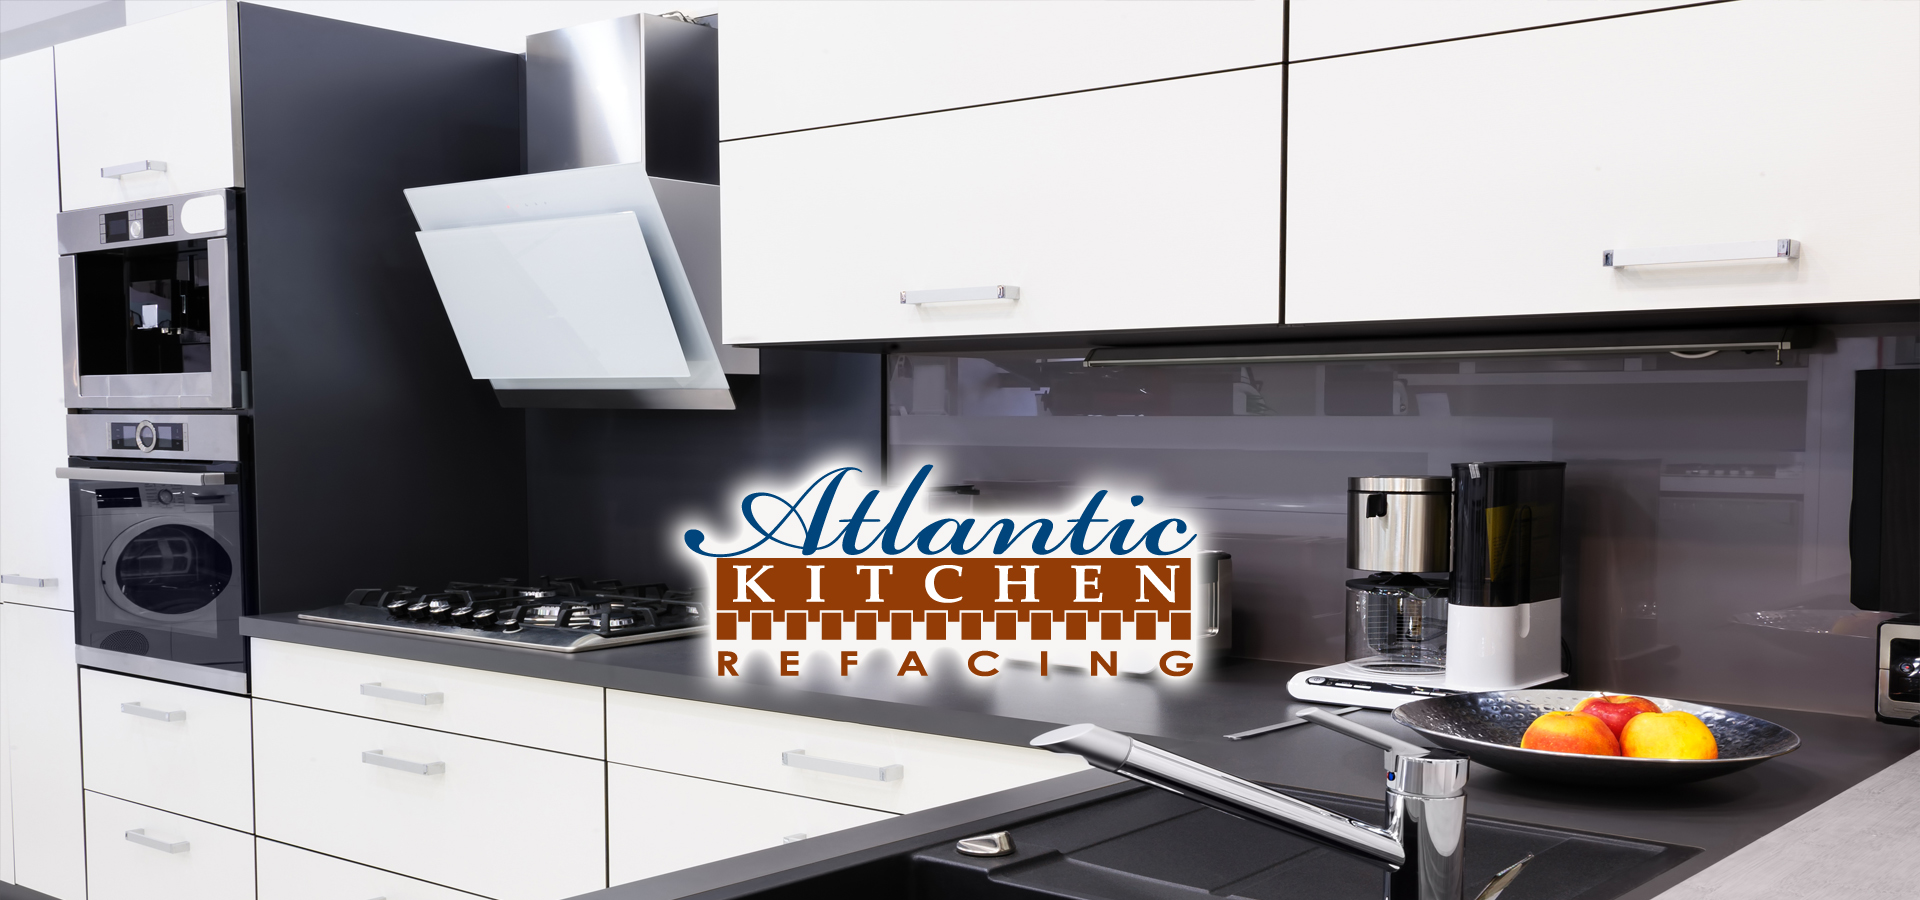 Atlantic kitchen refacing kitchen refacing refinishing for Cabinet refacing price range